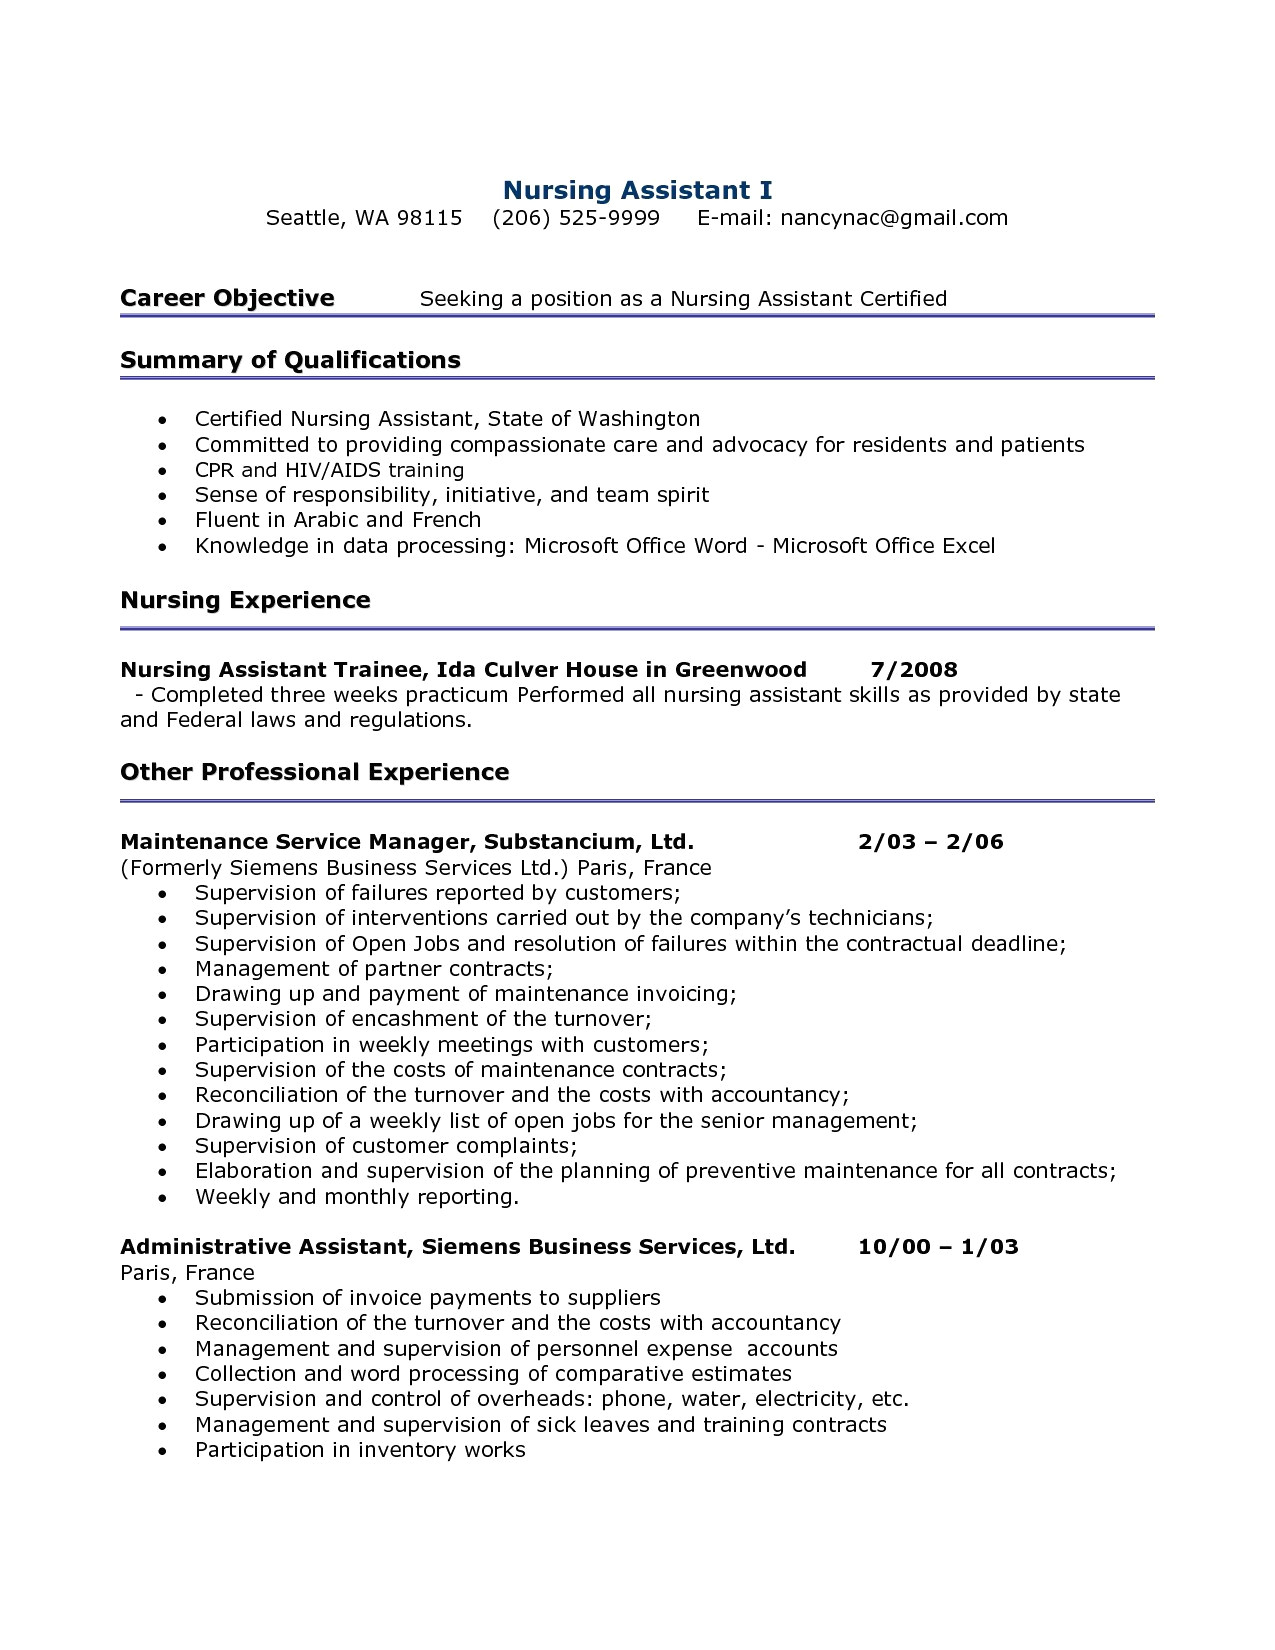 nursing resume template free download example-Luxury Awesome Youtube Banner Designs Free Download Resume Templates Lovely Pr Resume Template Elegant Dictionary 17-q